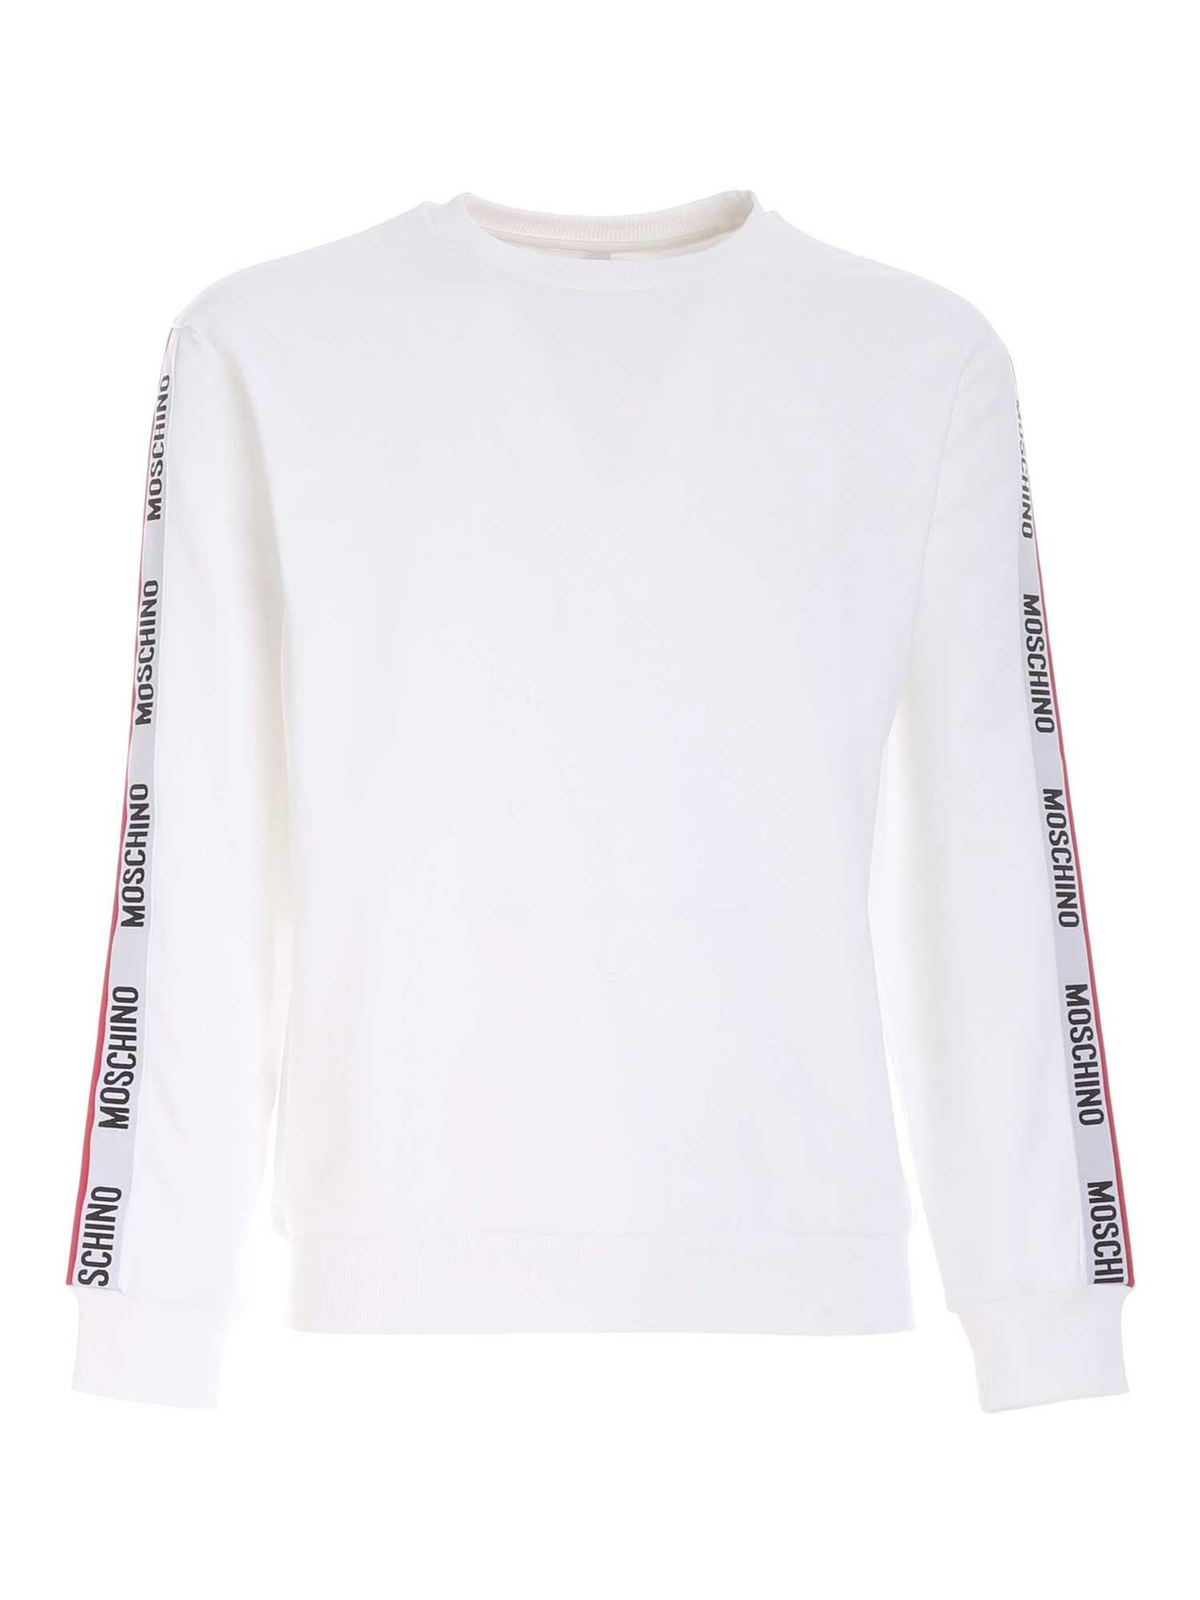 Moschino LOGO BAND SWEATSHIRT IN WHITE